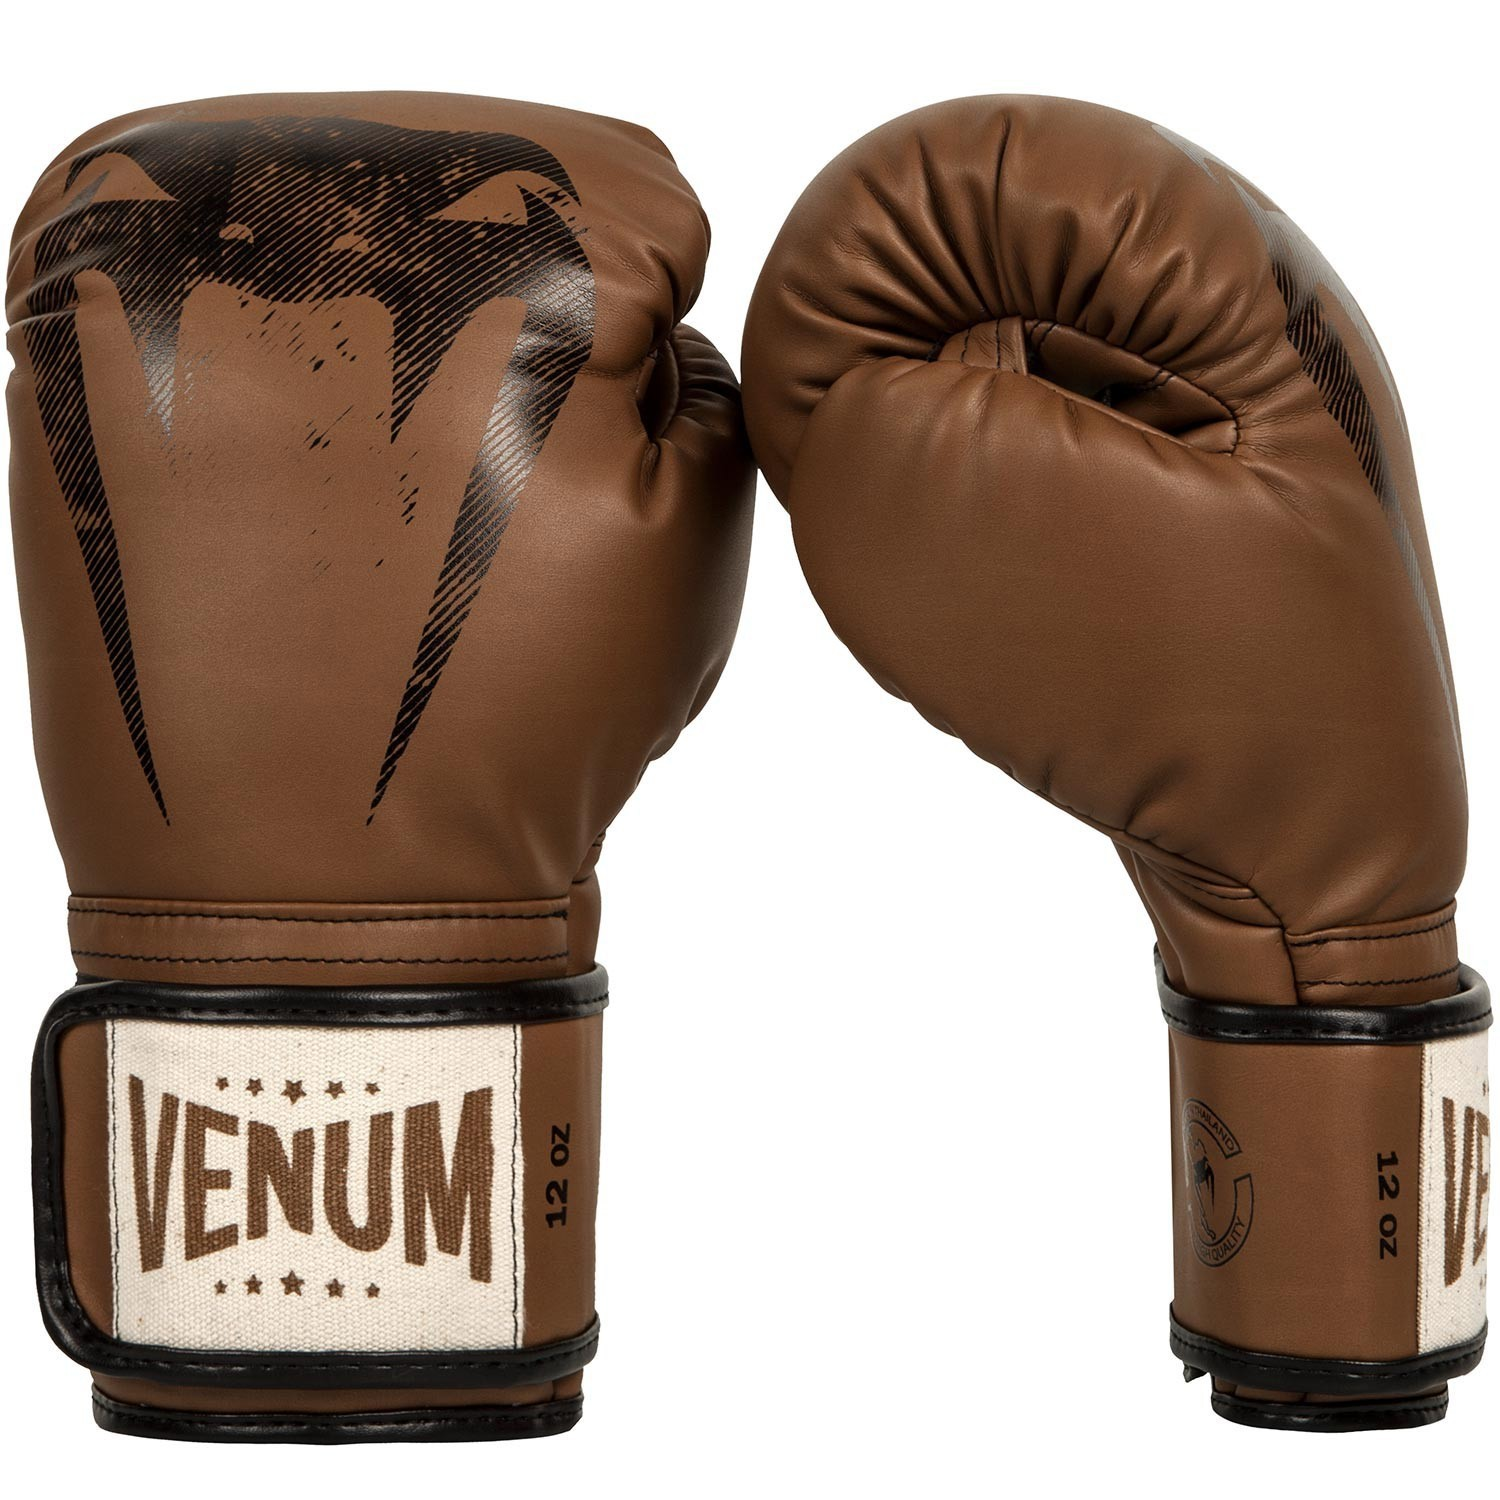 Găng Tay Venum Giant Sparring Boxing Gloves - Brown